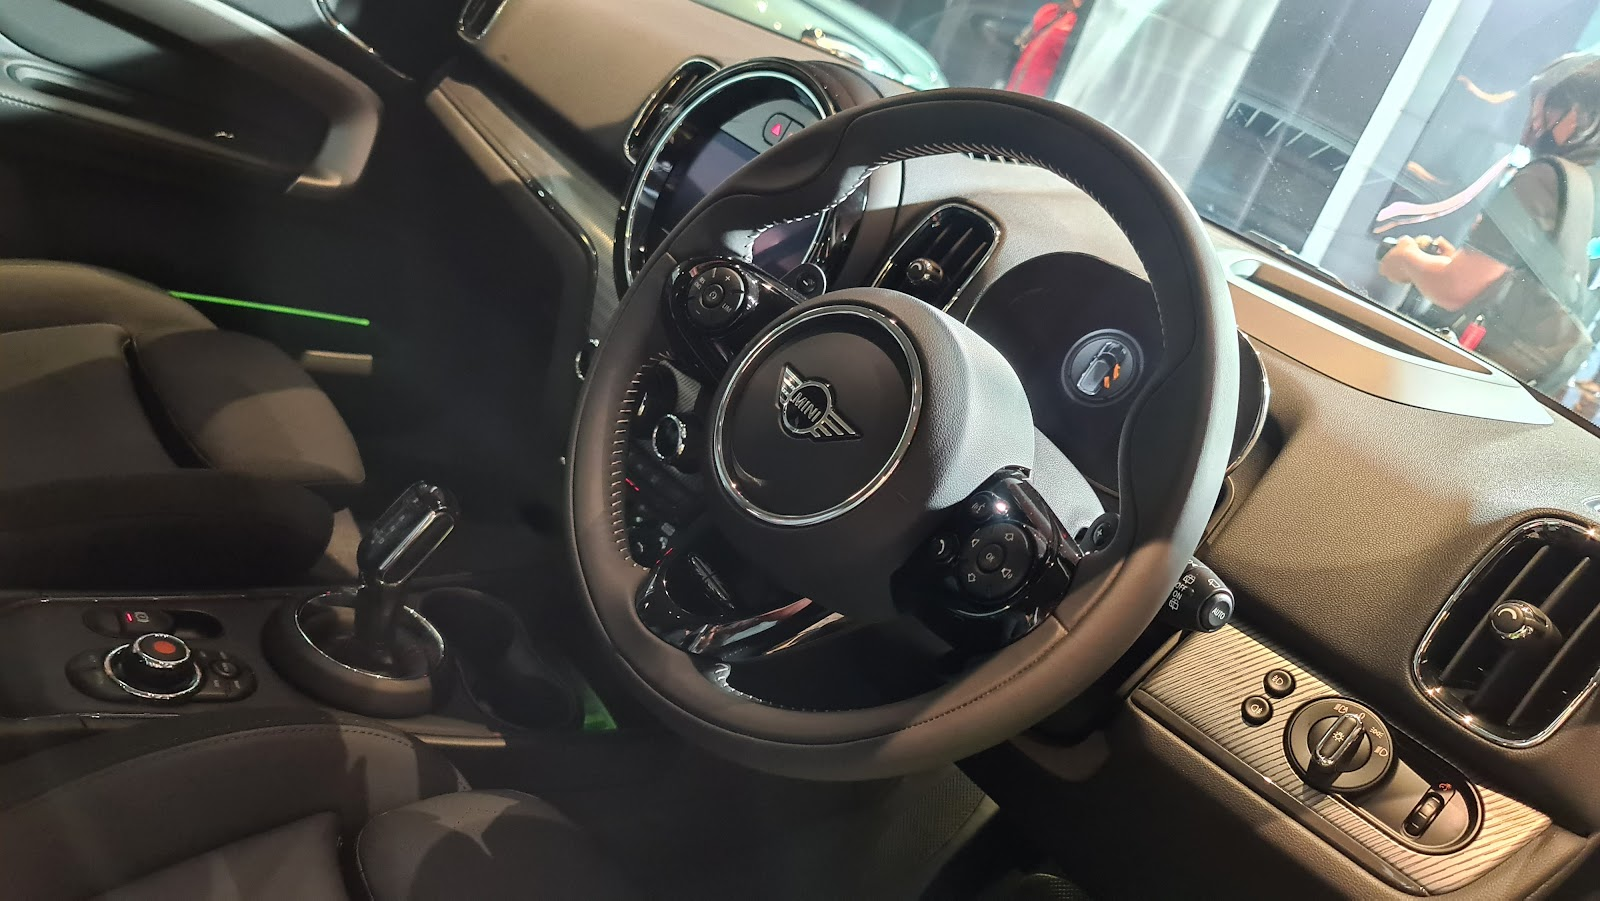 2021 MINI Cooper S Countryman Walknappa leather steering wheel